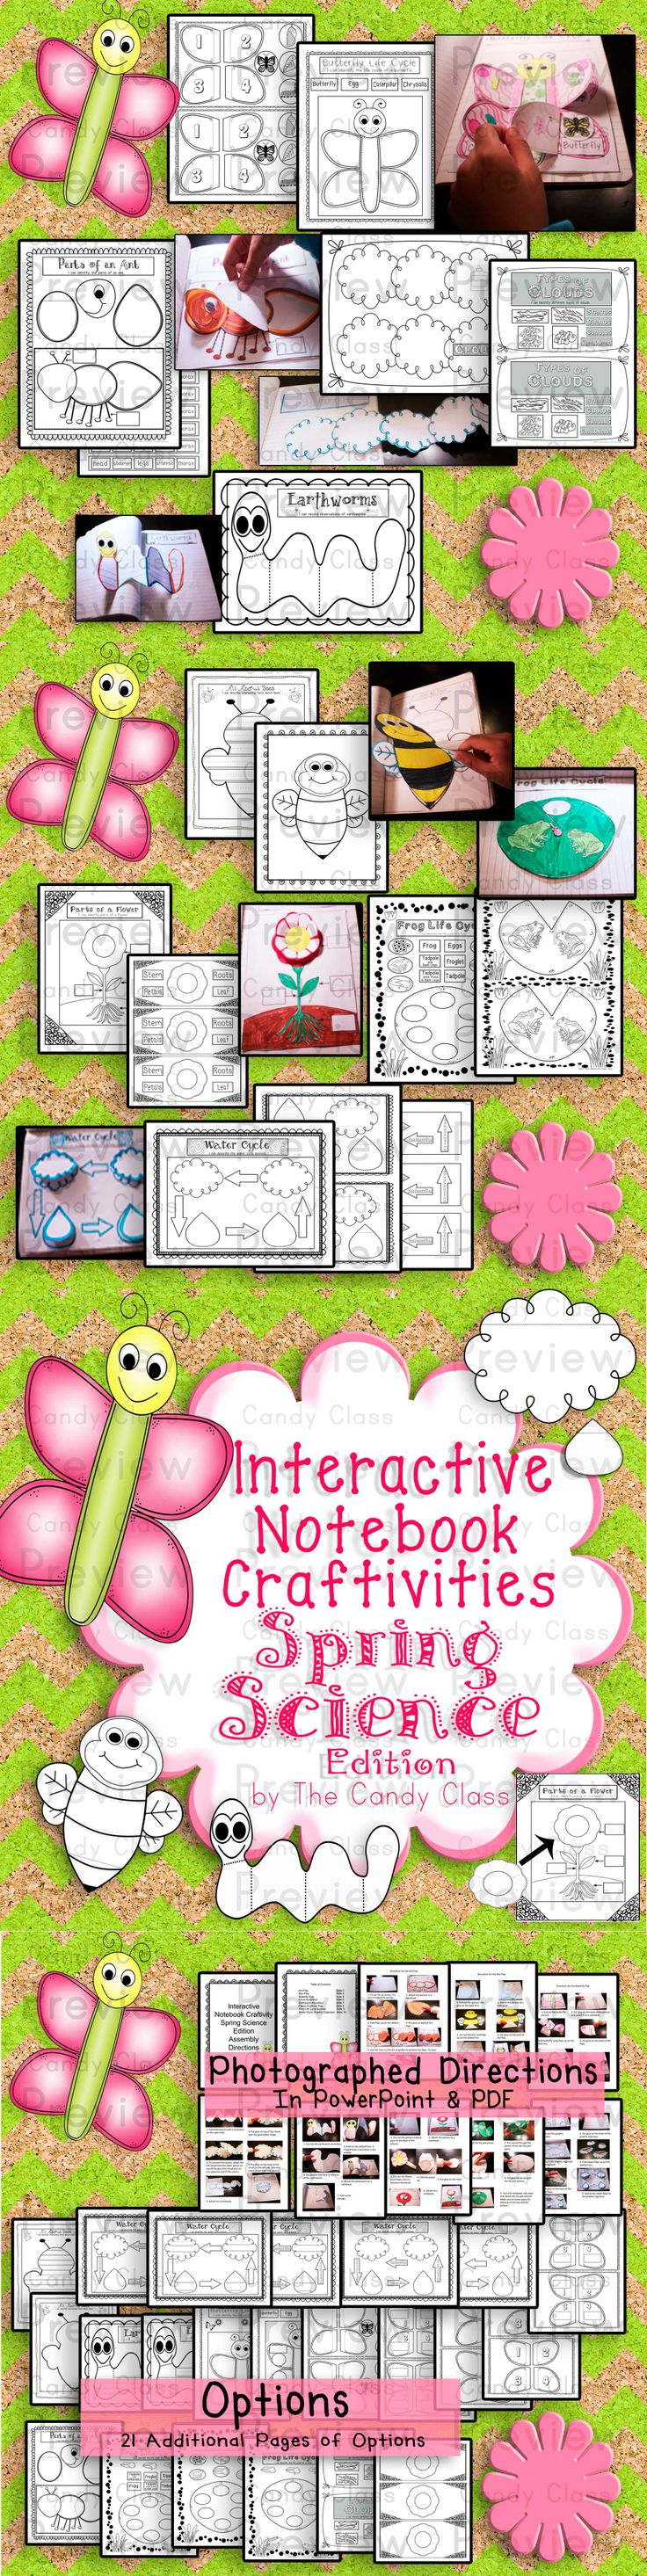 Interactive Notebook Craftivities Spring Science Edition. 40% off the first 24 hours, so snag this for $3.60. Offer ends 1/24 at around 7:30 pm EST.